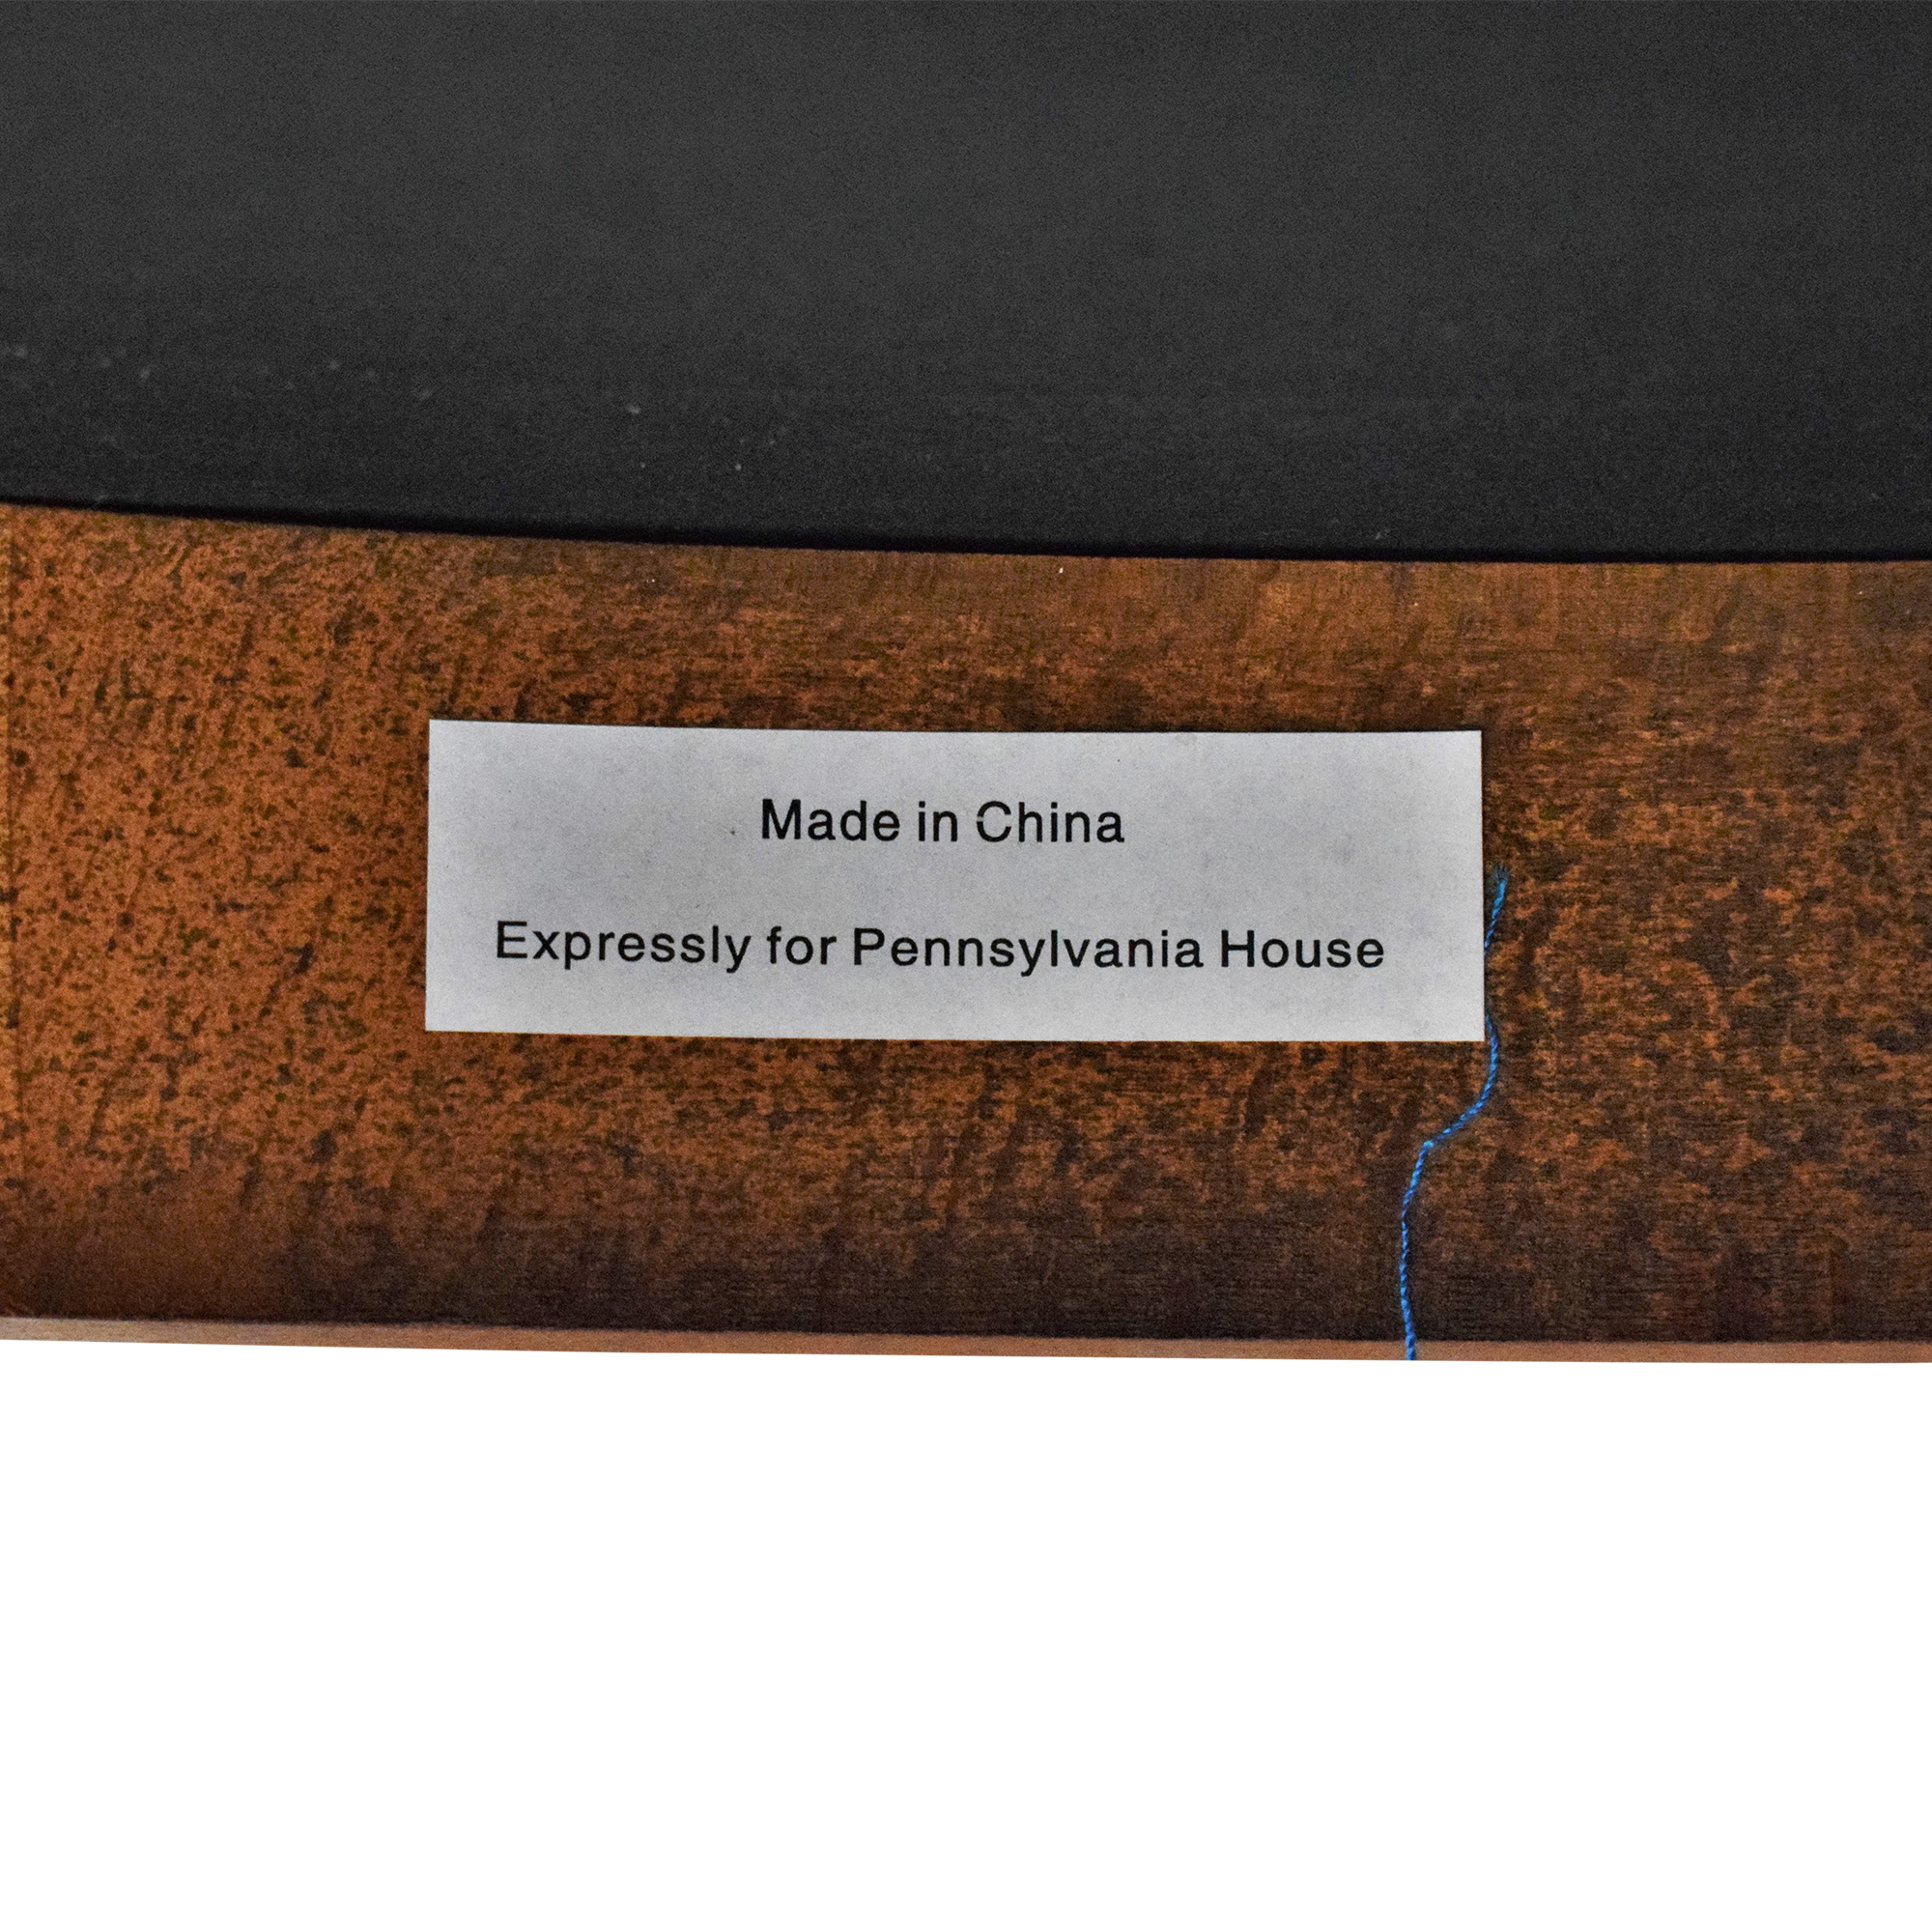 Pennsylvania House Pennsylvania House Upholstered Dining Chairs used